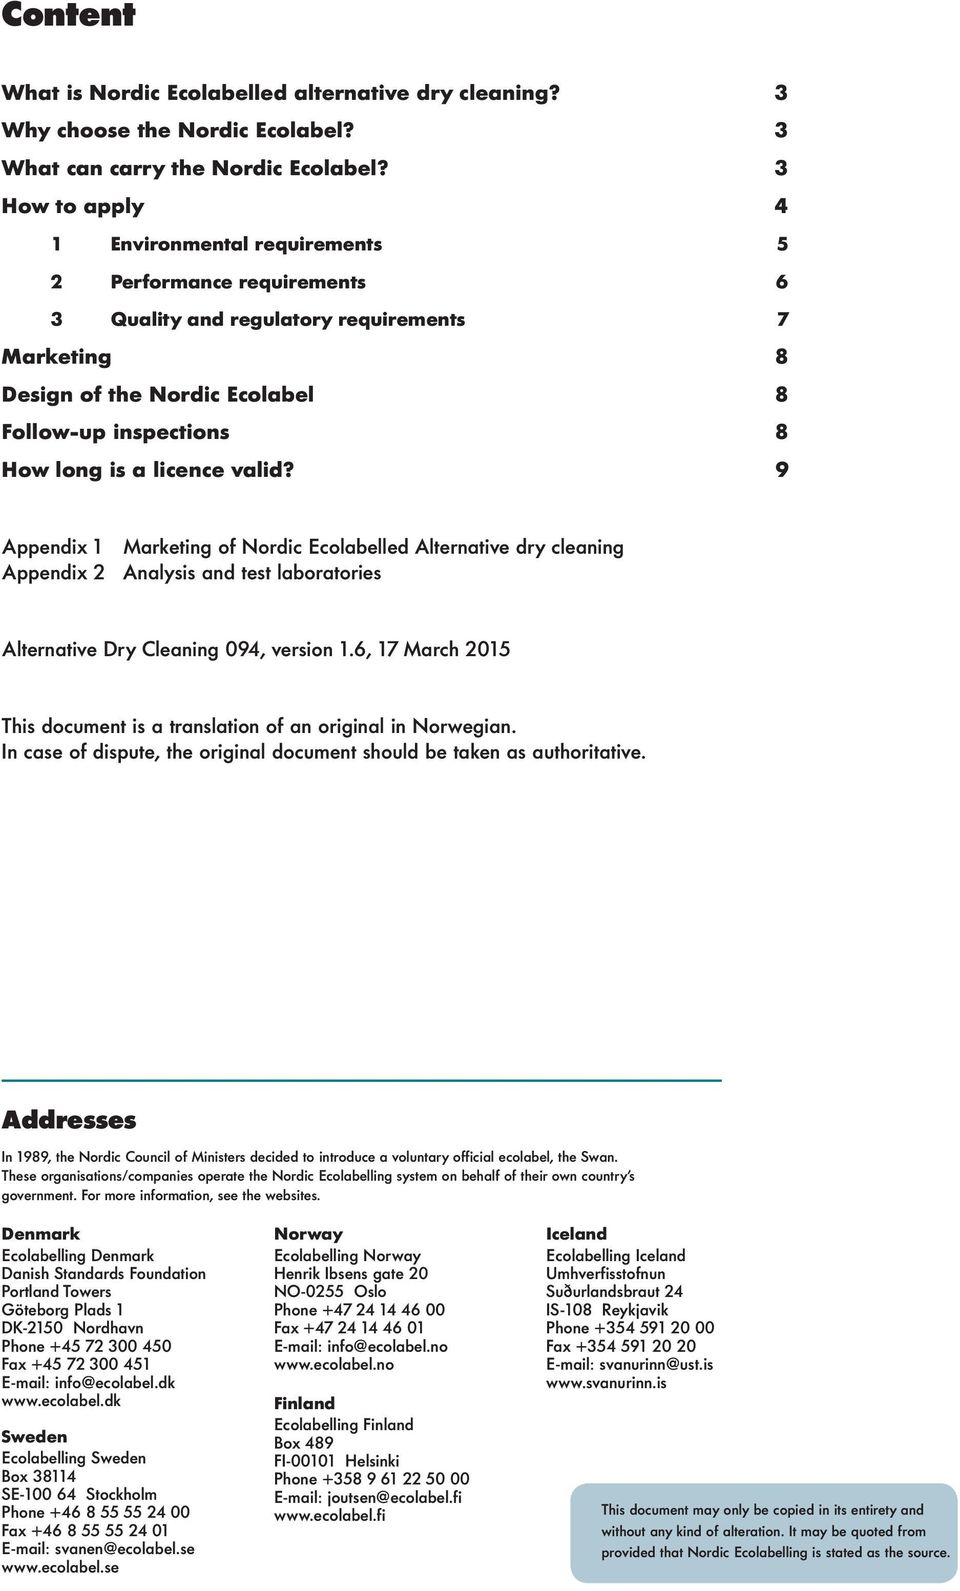 licence valid? 9 Appendix 1 Marketing of rdic Ecolabelled Alternative dry cleaning Appendix 2 Analysis and test laboratories Alternative Dry Cleaning 094, version 1.